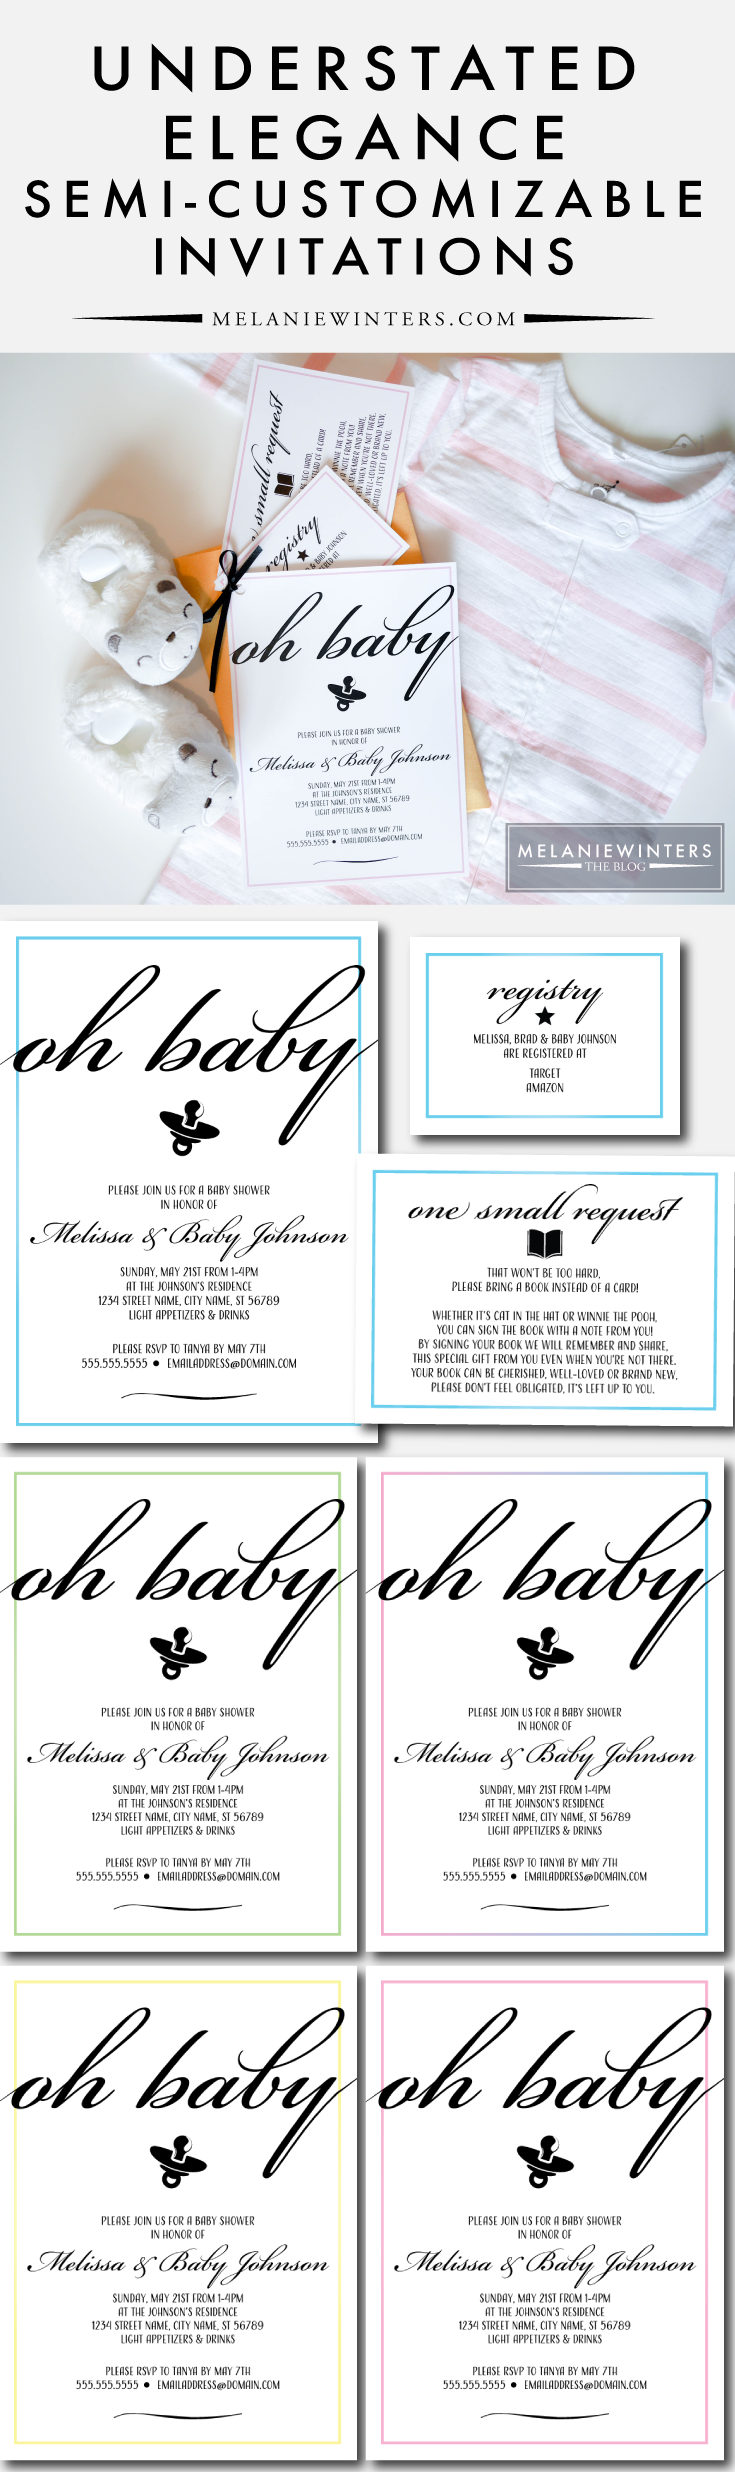 Customize these elegant baby shower invitations with our easy-to-submit form at check-out and receive your print-ready files within 3 business days!